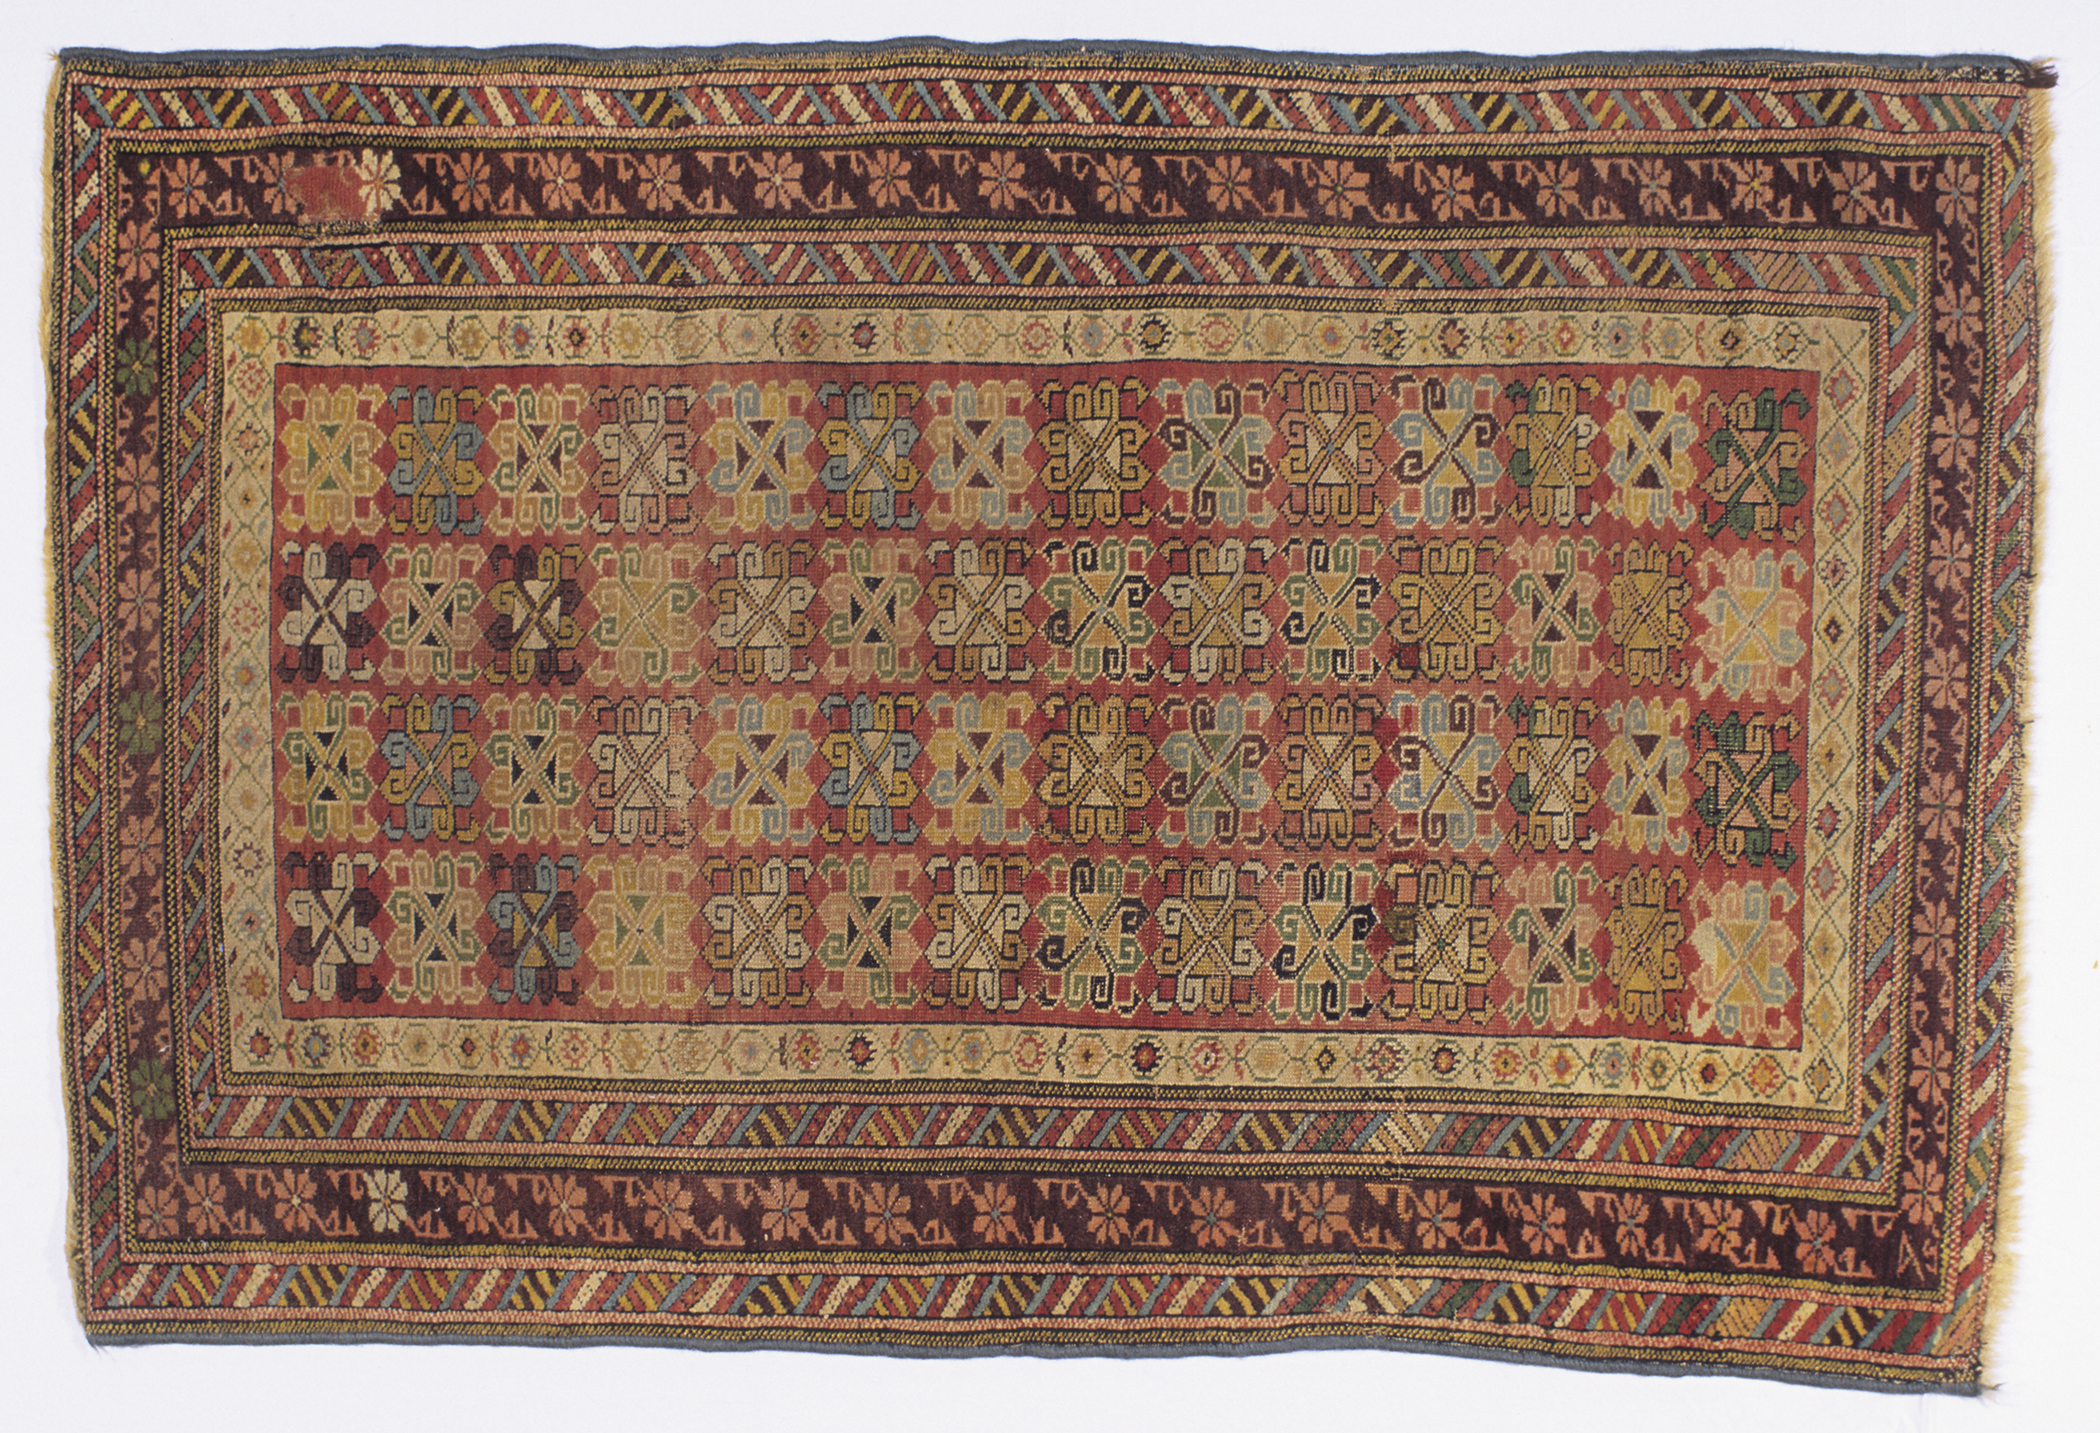 1959.1414 Rug, view 1